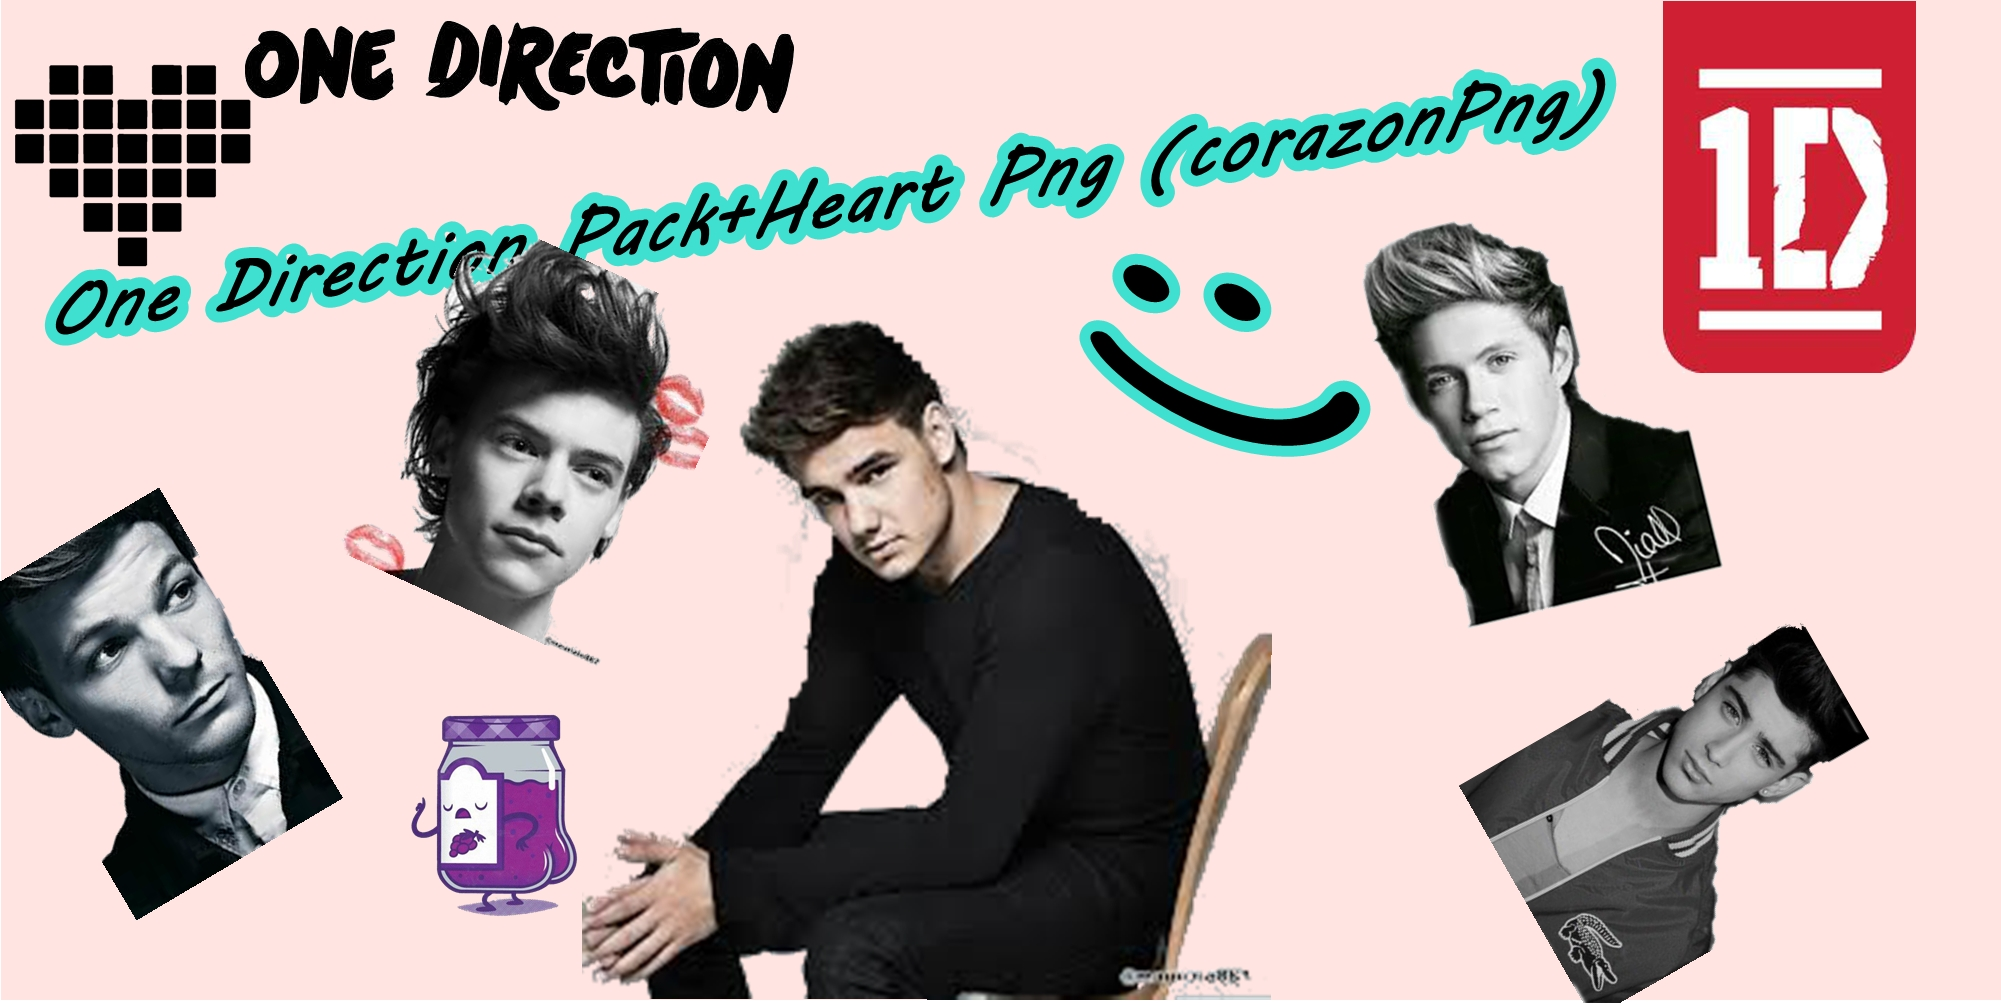 one direction logo corazon png by kinesdemaslow on